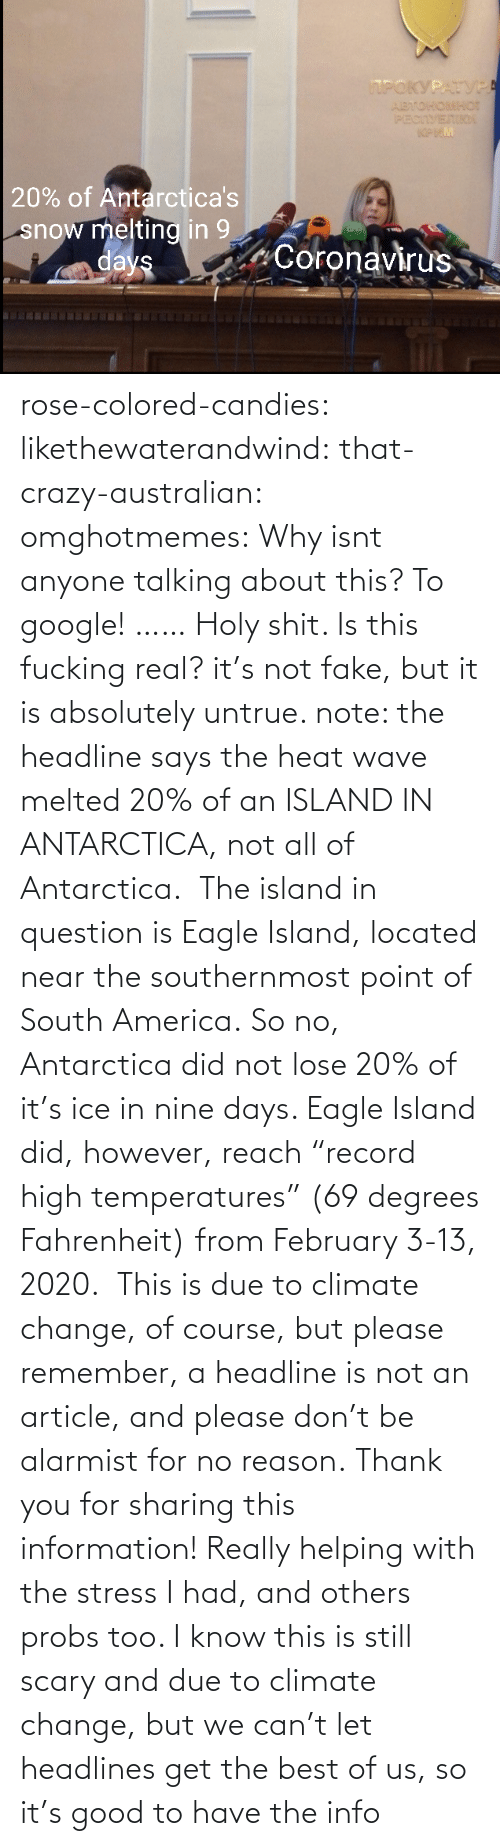 "island: rose-colored-candies: likethewaterandwind:   that-crazy-australian:  omghotmemes:  Why isnt anyone talking about this?   To google!  ……   Holy shit. Is this fucking real?   it's not fake, but it is absolutely untrue. note: the headline says the heat wave melted 20% of an ISLAND IN ANTARCTICA, not all of Antarctica.  The island in question is Eagle Island, located near the southernmost point of South America. So no, Antarctica did not lose 20% of it's ice in nine days. Eagle Island did, however, reach ""record high temperatures"" (69 degrees Fahrenheit) from February 3-13, 2020.  This is due to climate change, of course, but please remember, a headline is not an article, and please don't be alarmist for no reason.    Thank you for sharing this information! Really helping with the stress I had, and others probs too. I know this is still scary and due to climate change, but we can't let headlines get the best of us, so it's good to have the info"